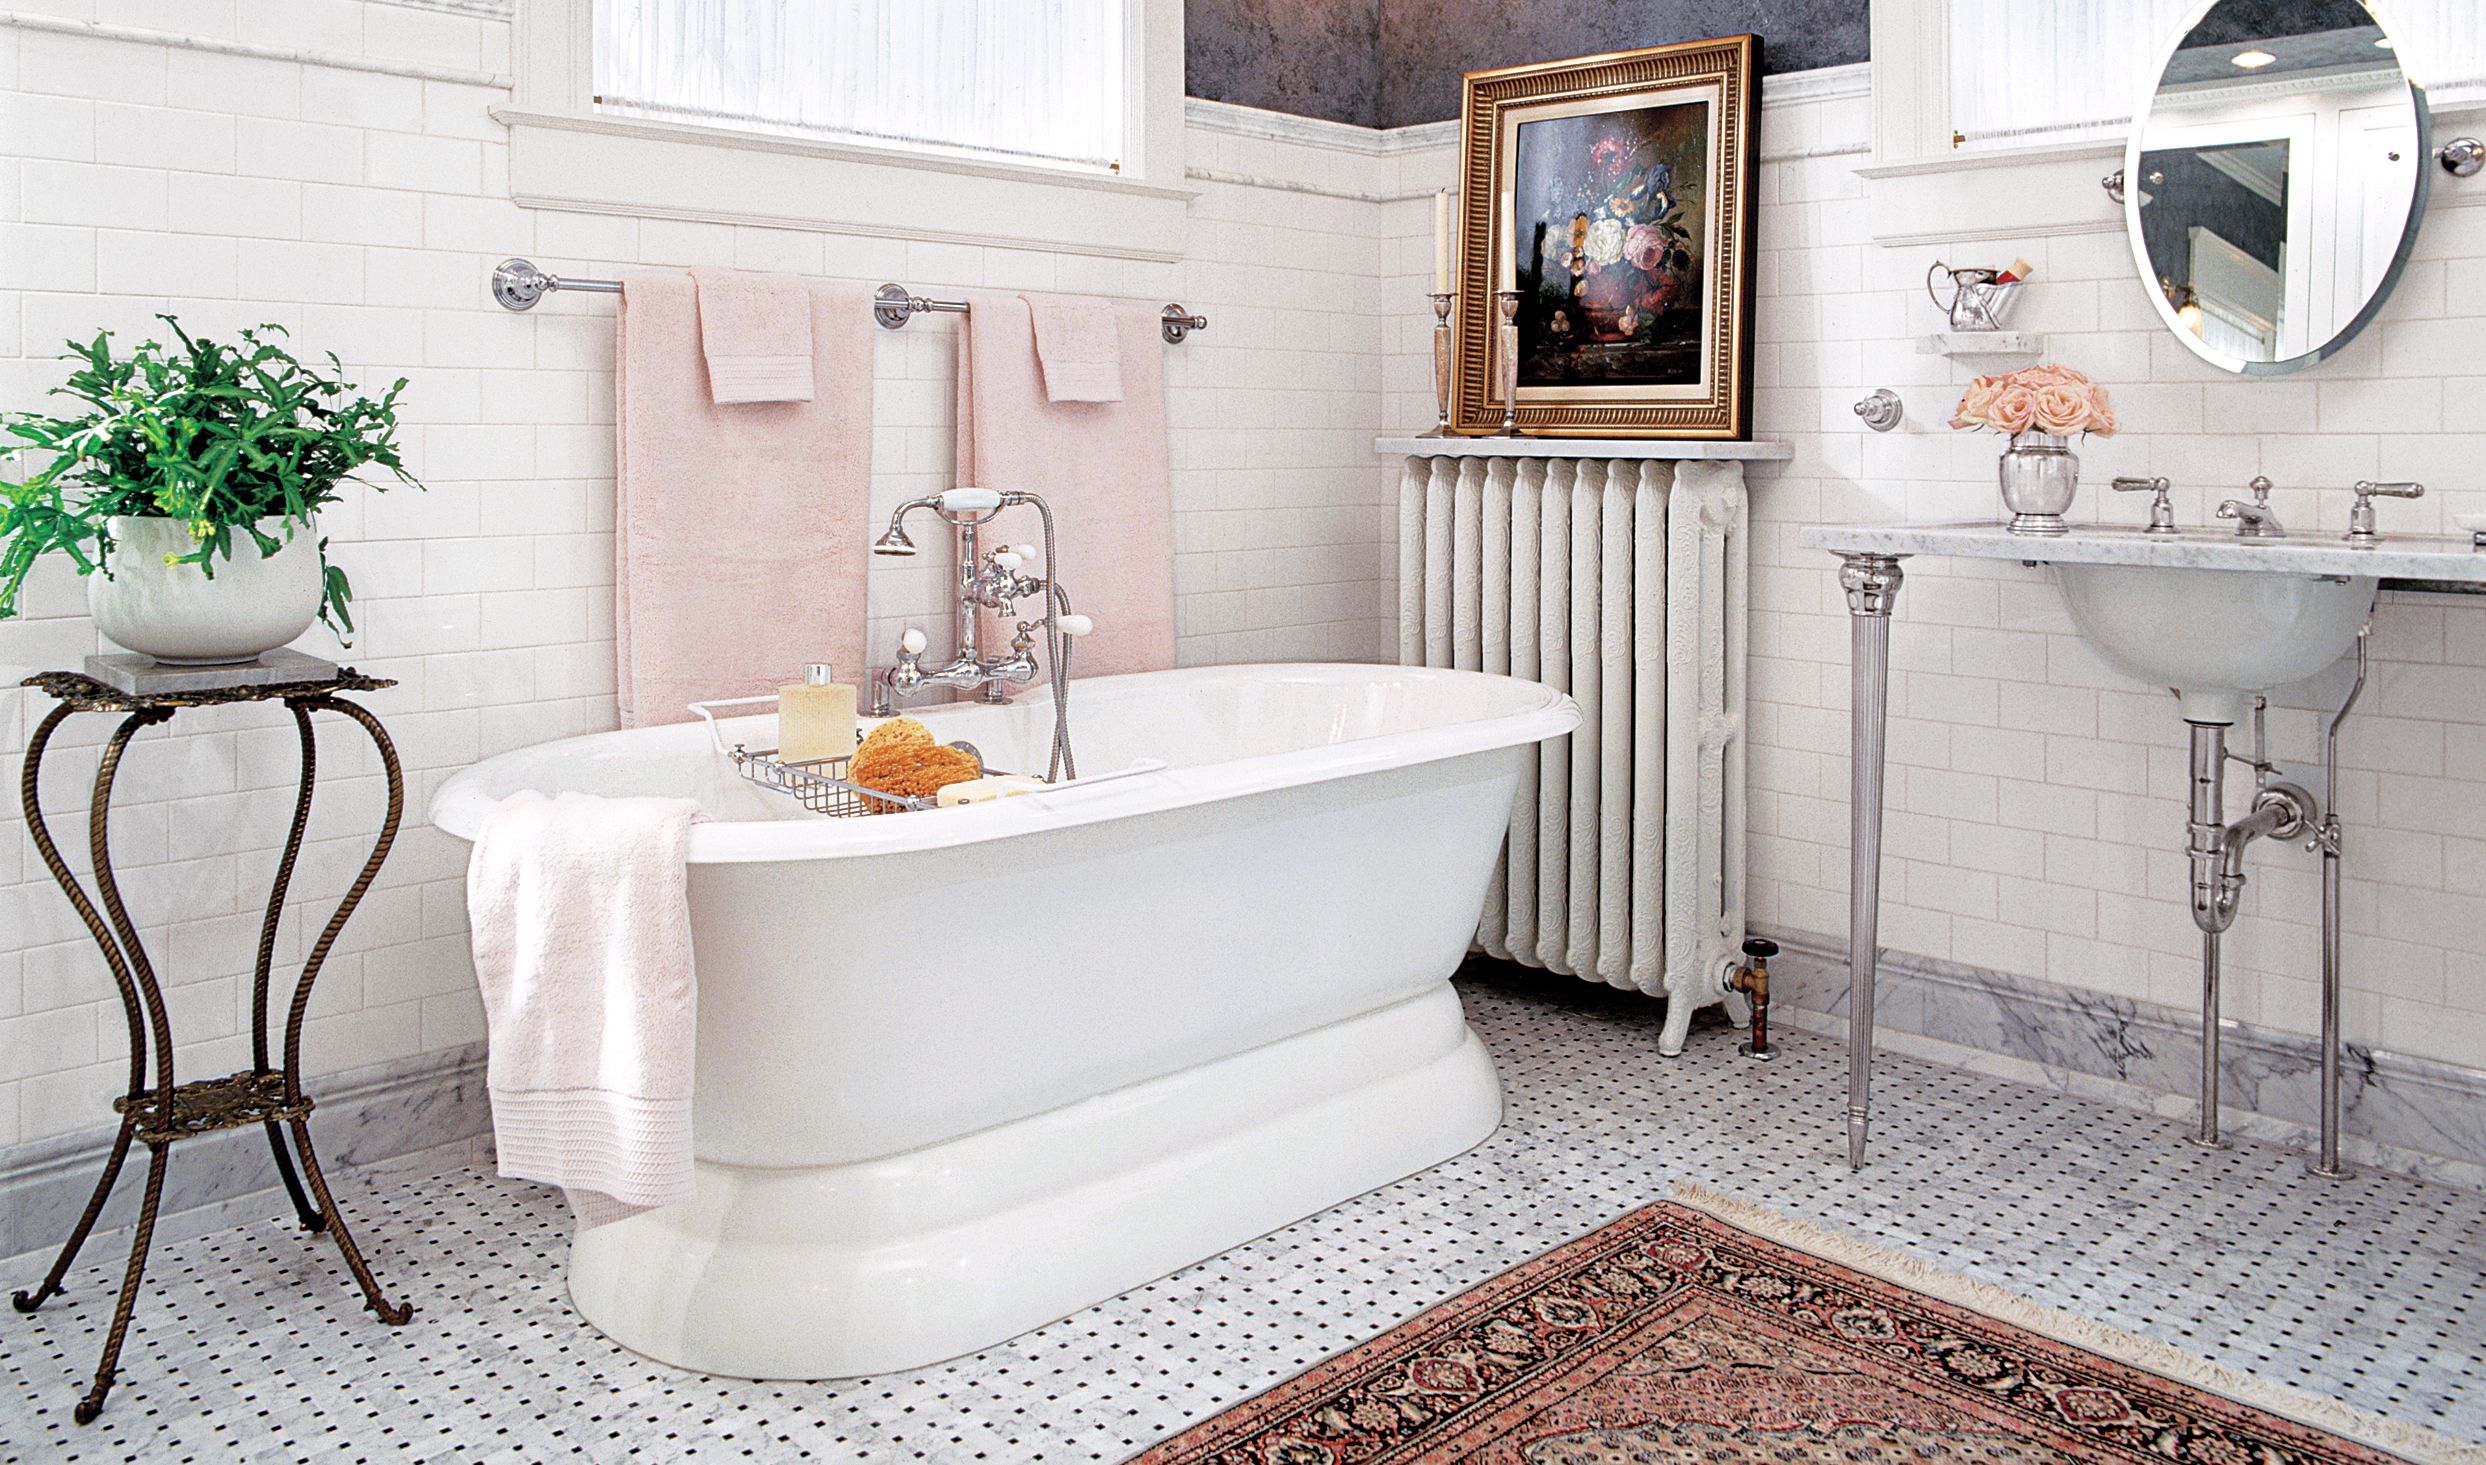 Bathroom | Bathroom Ideas | Pinterest | Victorian, Victorian ...